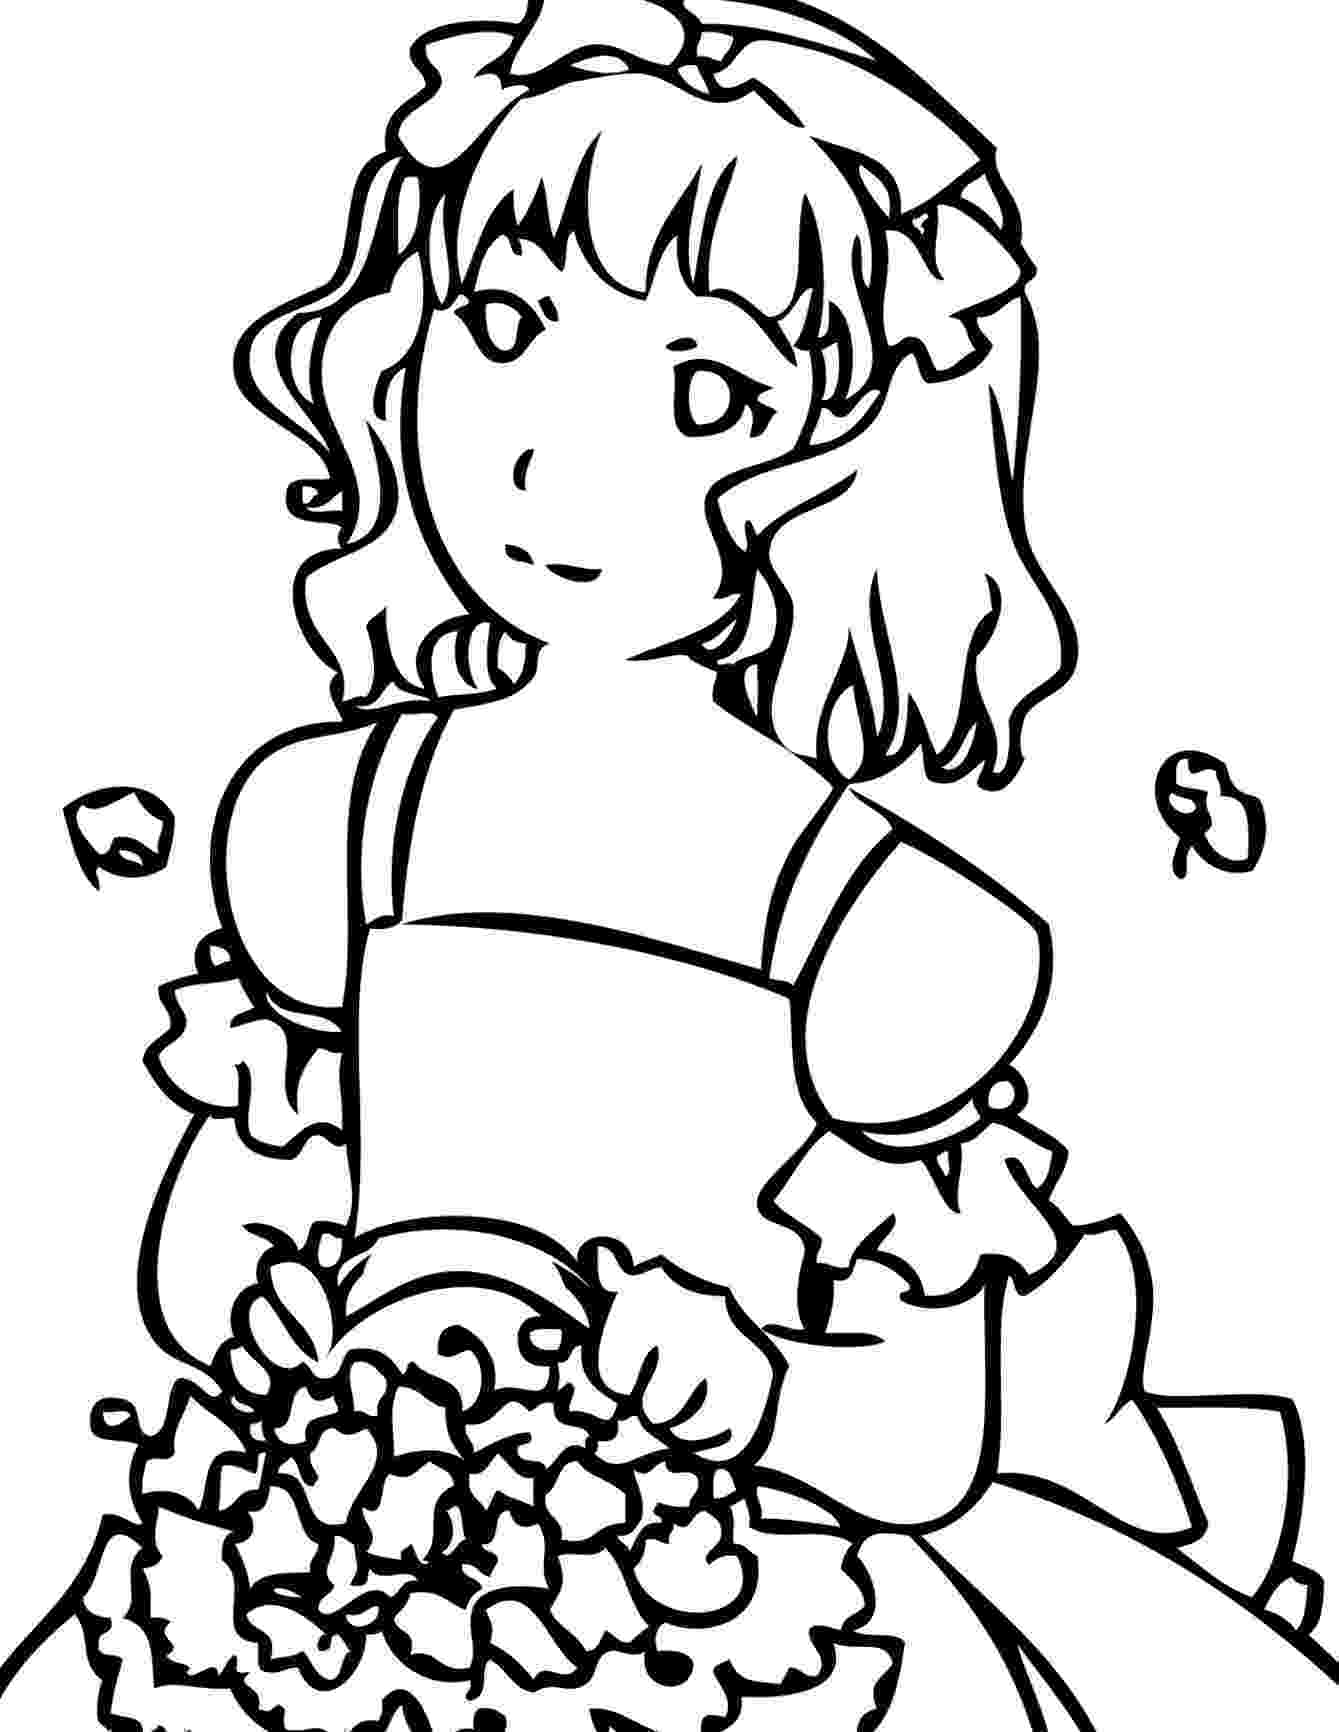 colering pages for girls coloring pages for girls dr odd for pages colering girls